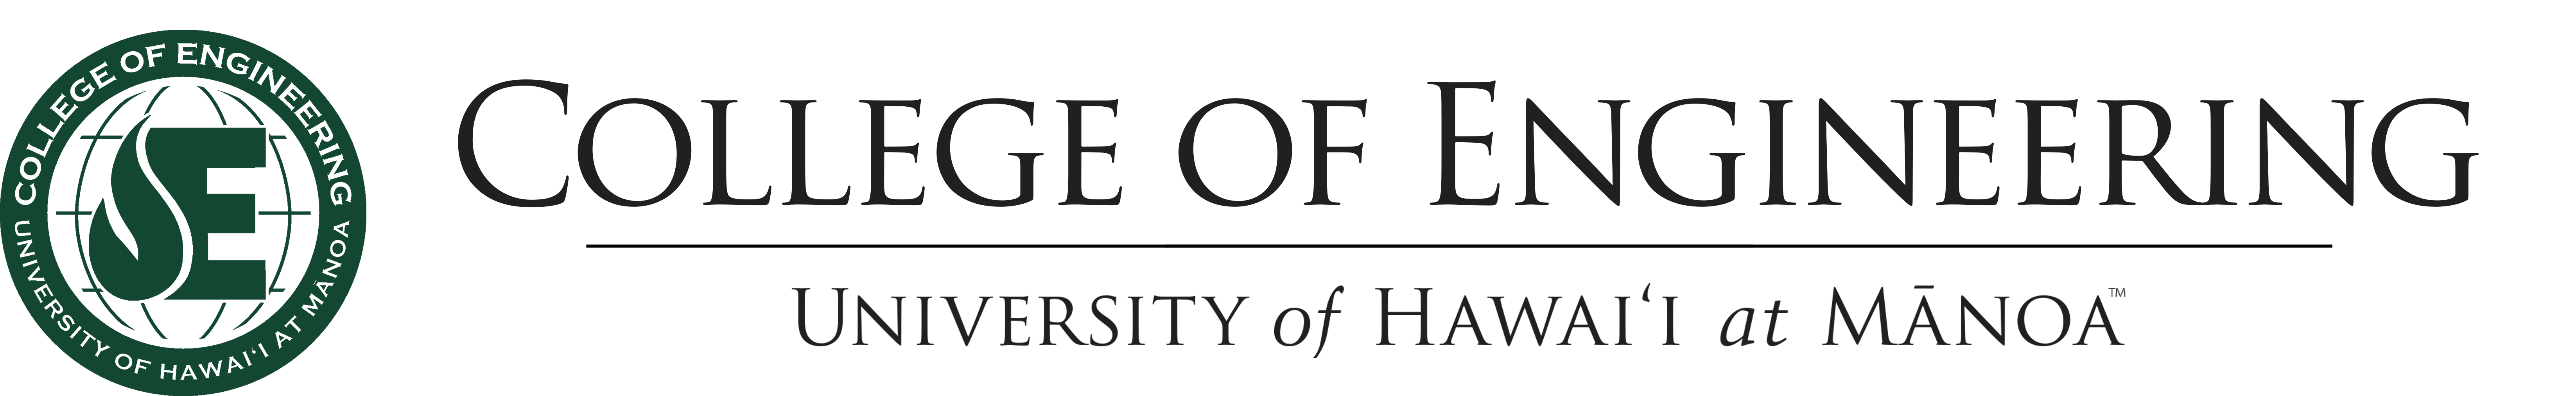 University of Hawai'i College of Engineering